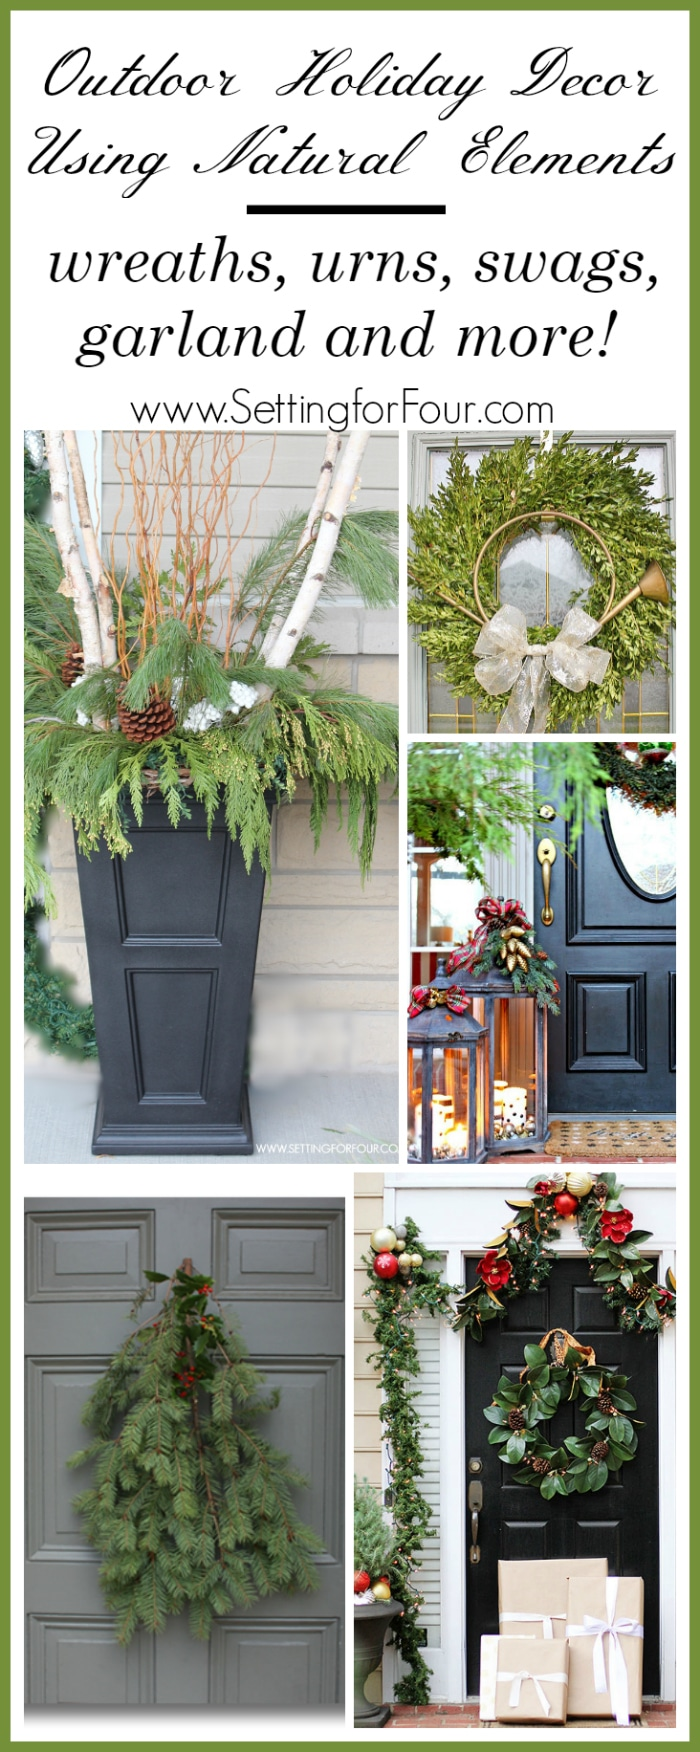 decor natural elements decorating with natural elements bring the outdoors in with this Outdoor Holiday Decor Using Natural Elements: How to decorate your home  outdoors with Natural Elements